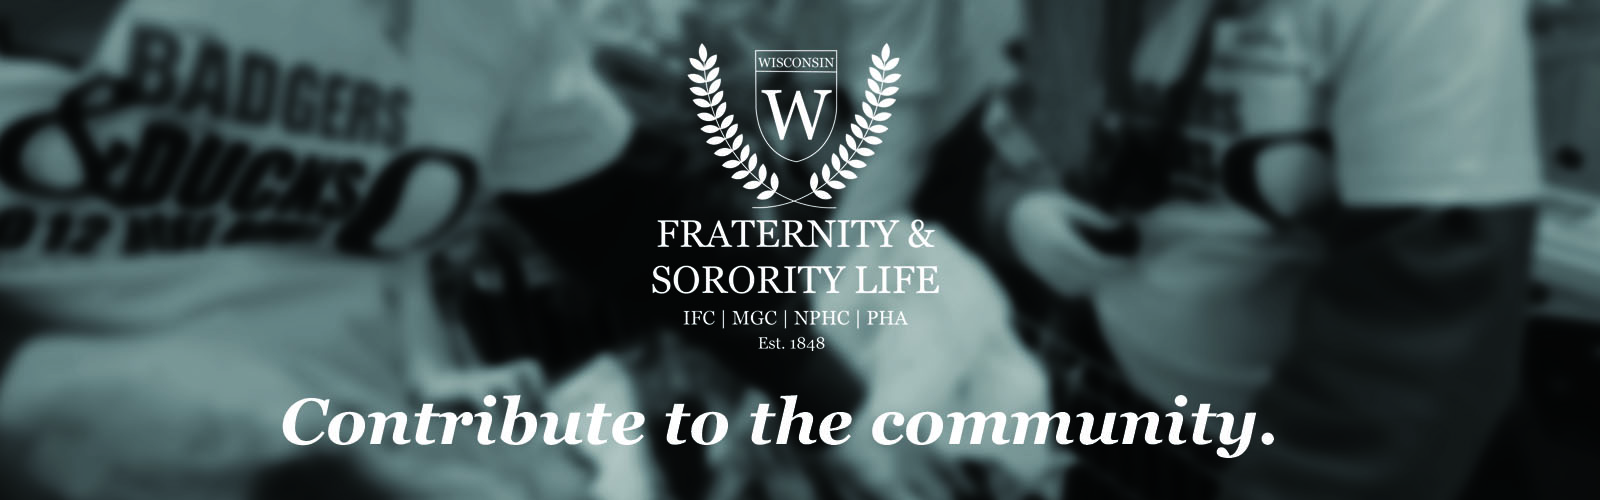 "black and white photo of hands putting items into bags with the Fraternity & Sorority Life logo and ""contribute to the community"" in the middle."